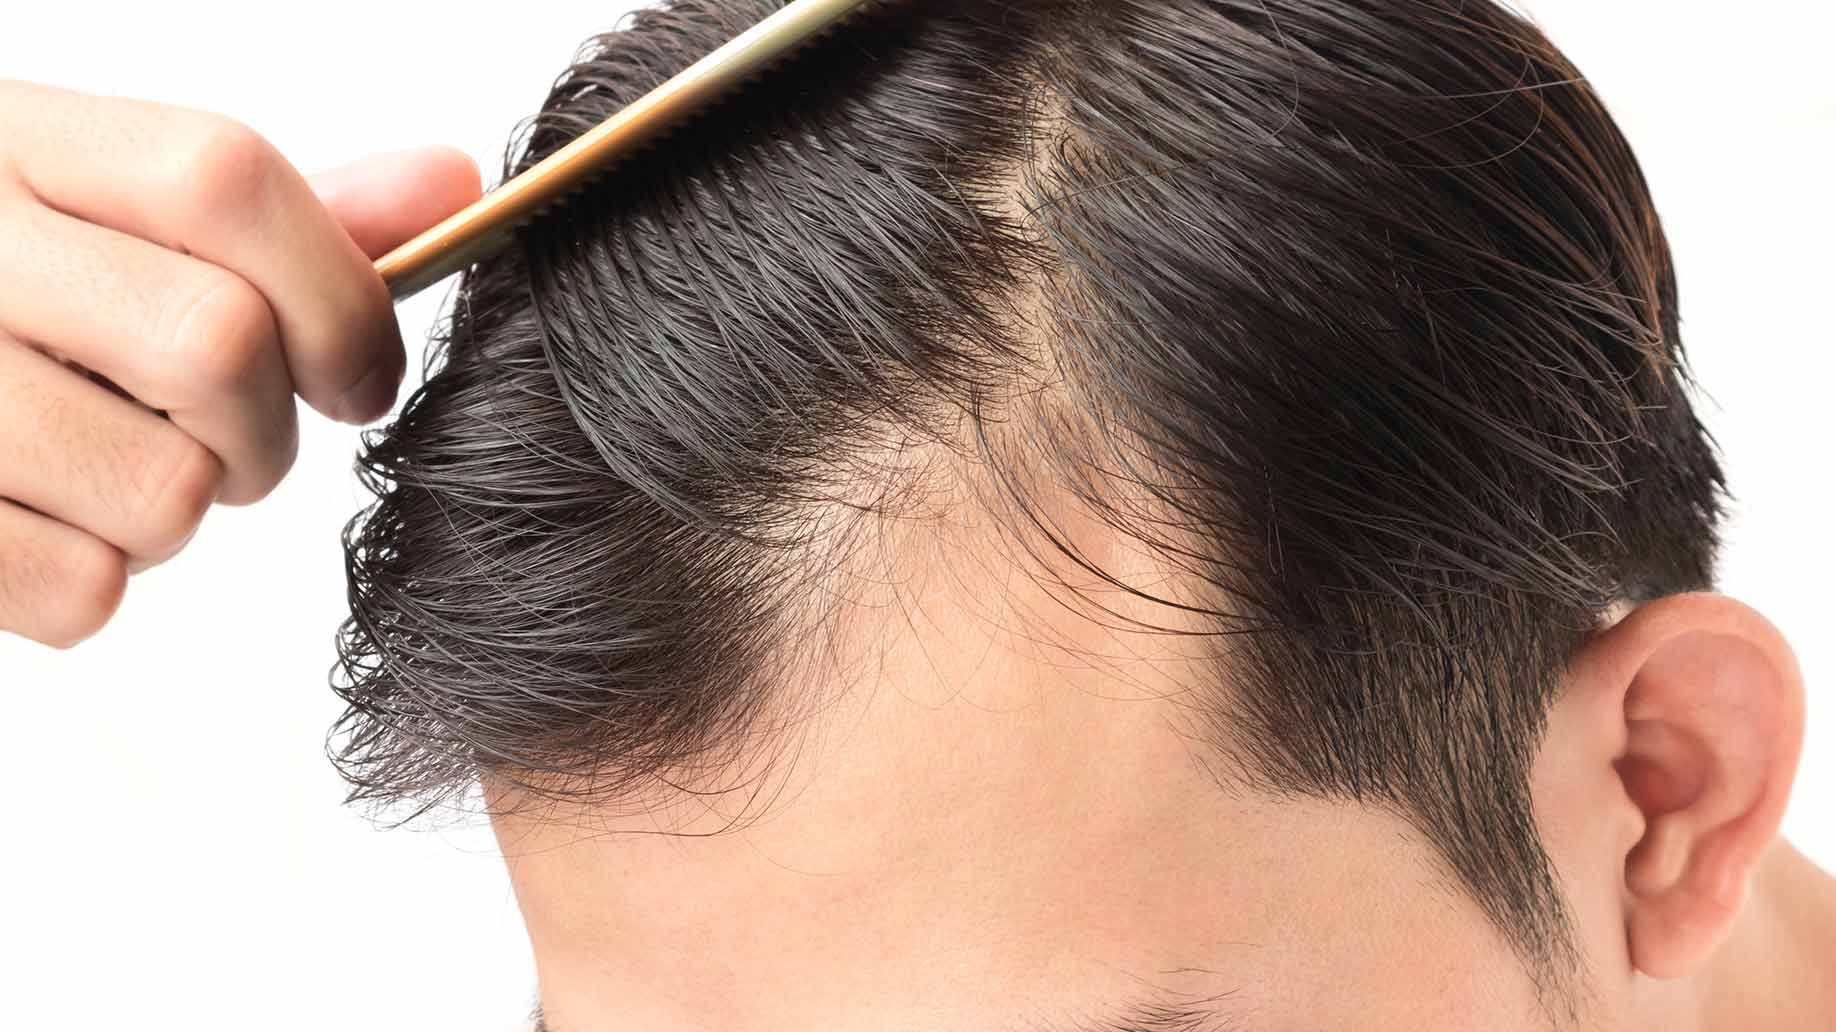 7 Natural Remedies & Treatments to Stop Hair Loss & Thinning